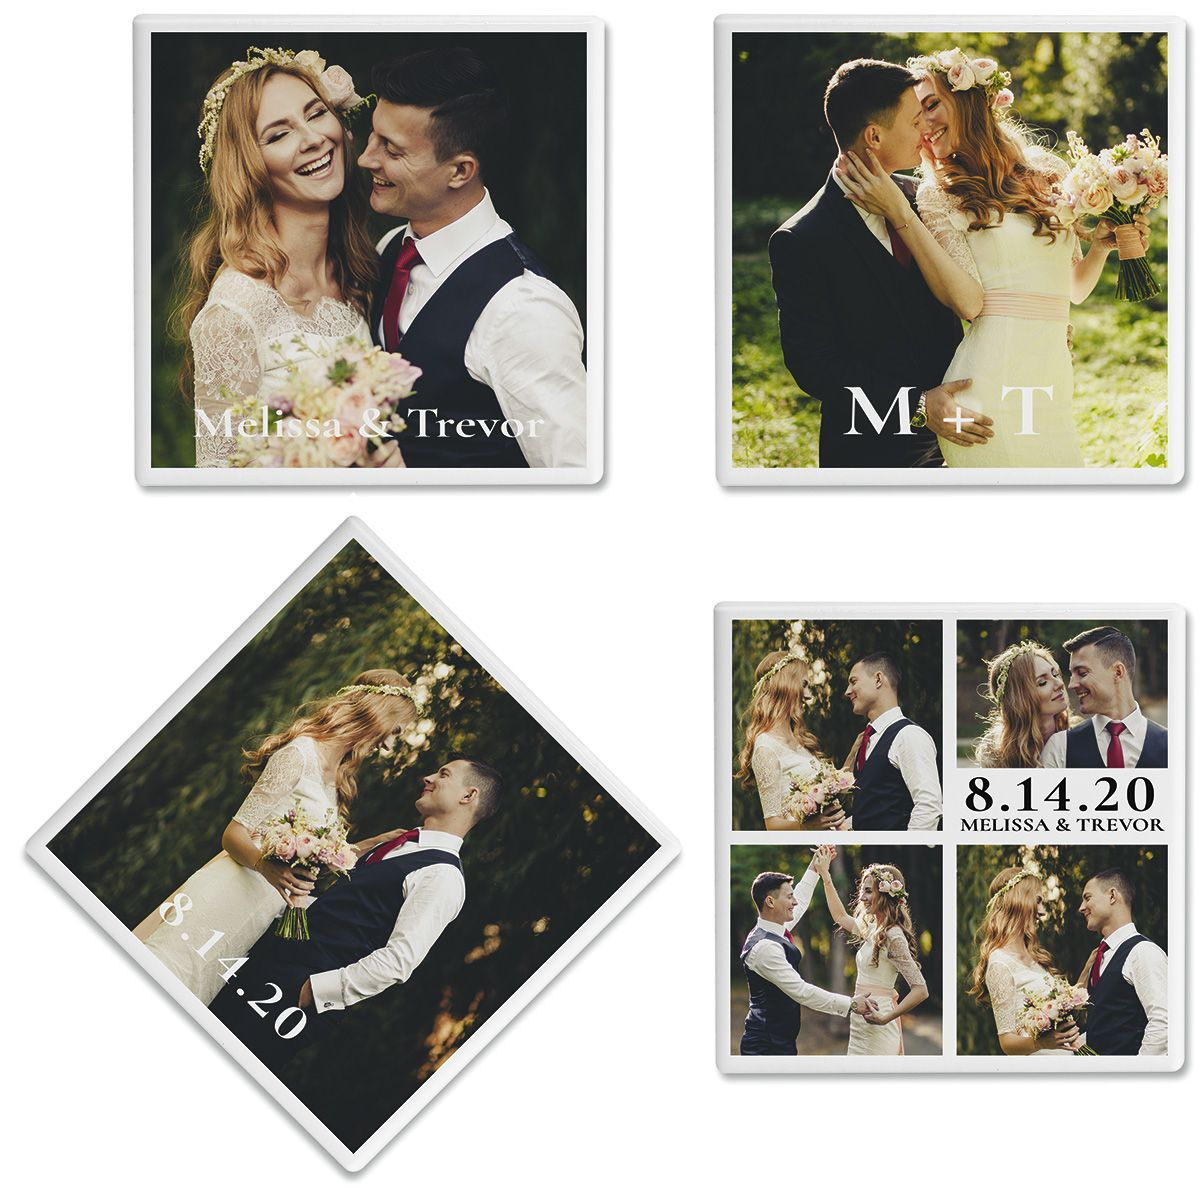 Nuptial Personalized Photo Coasters